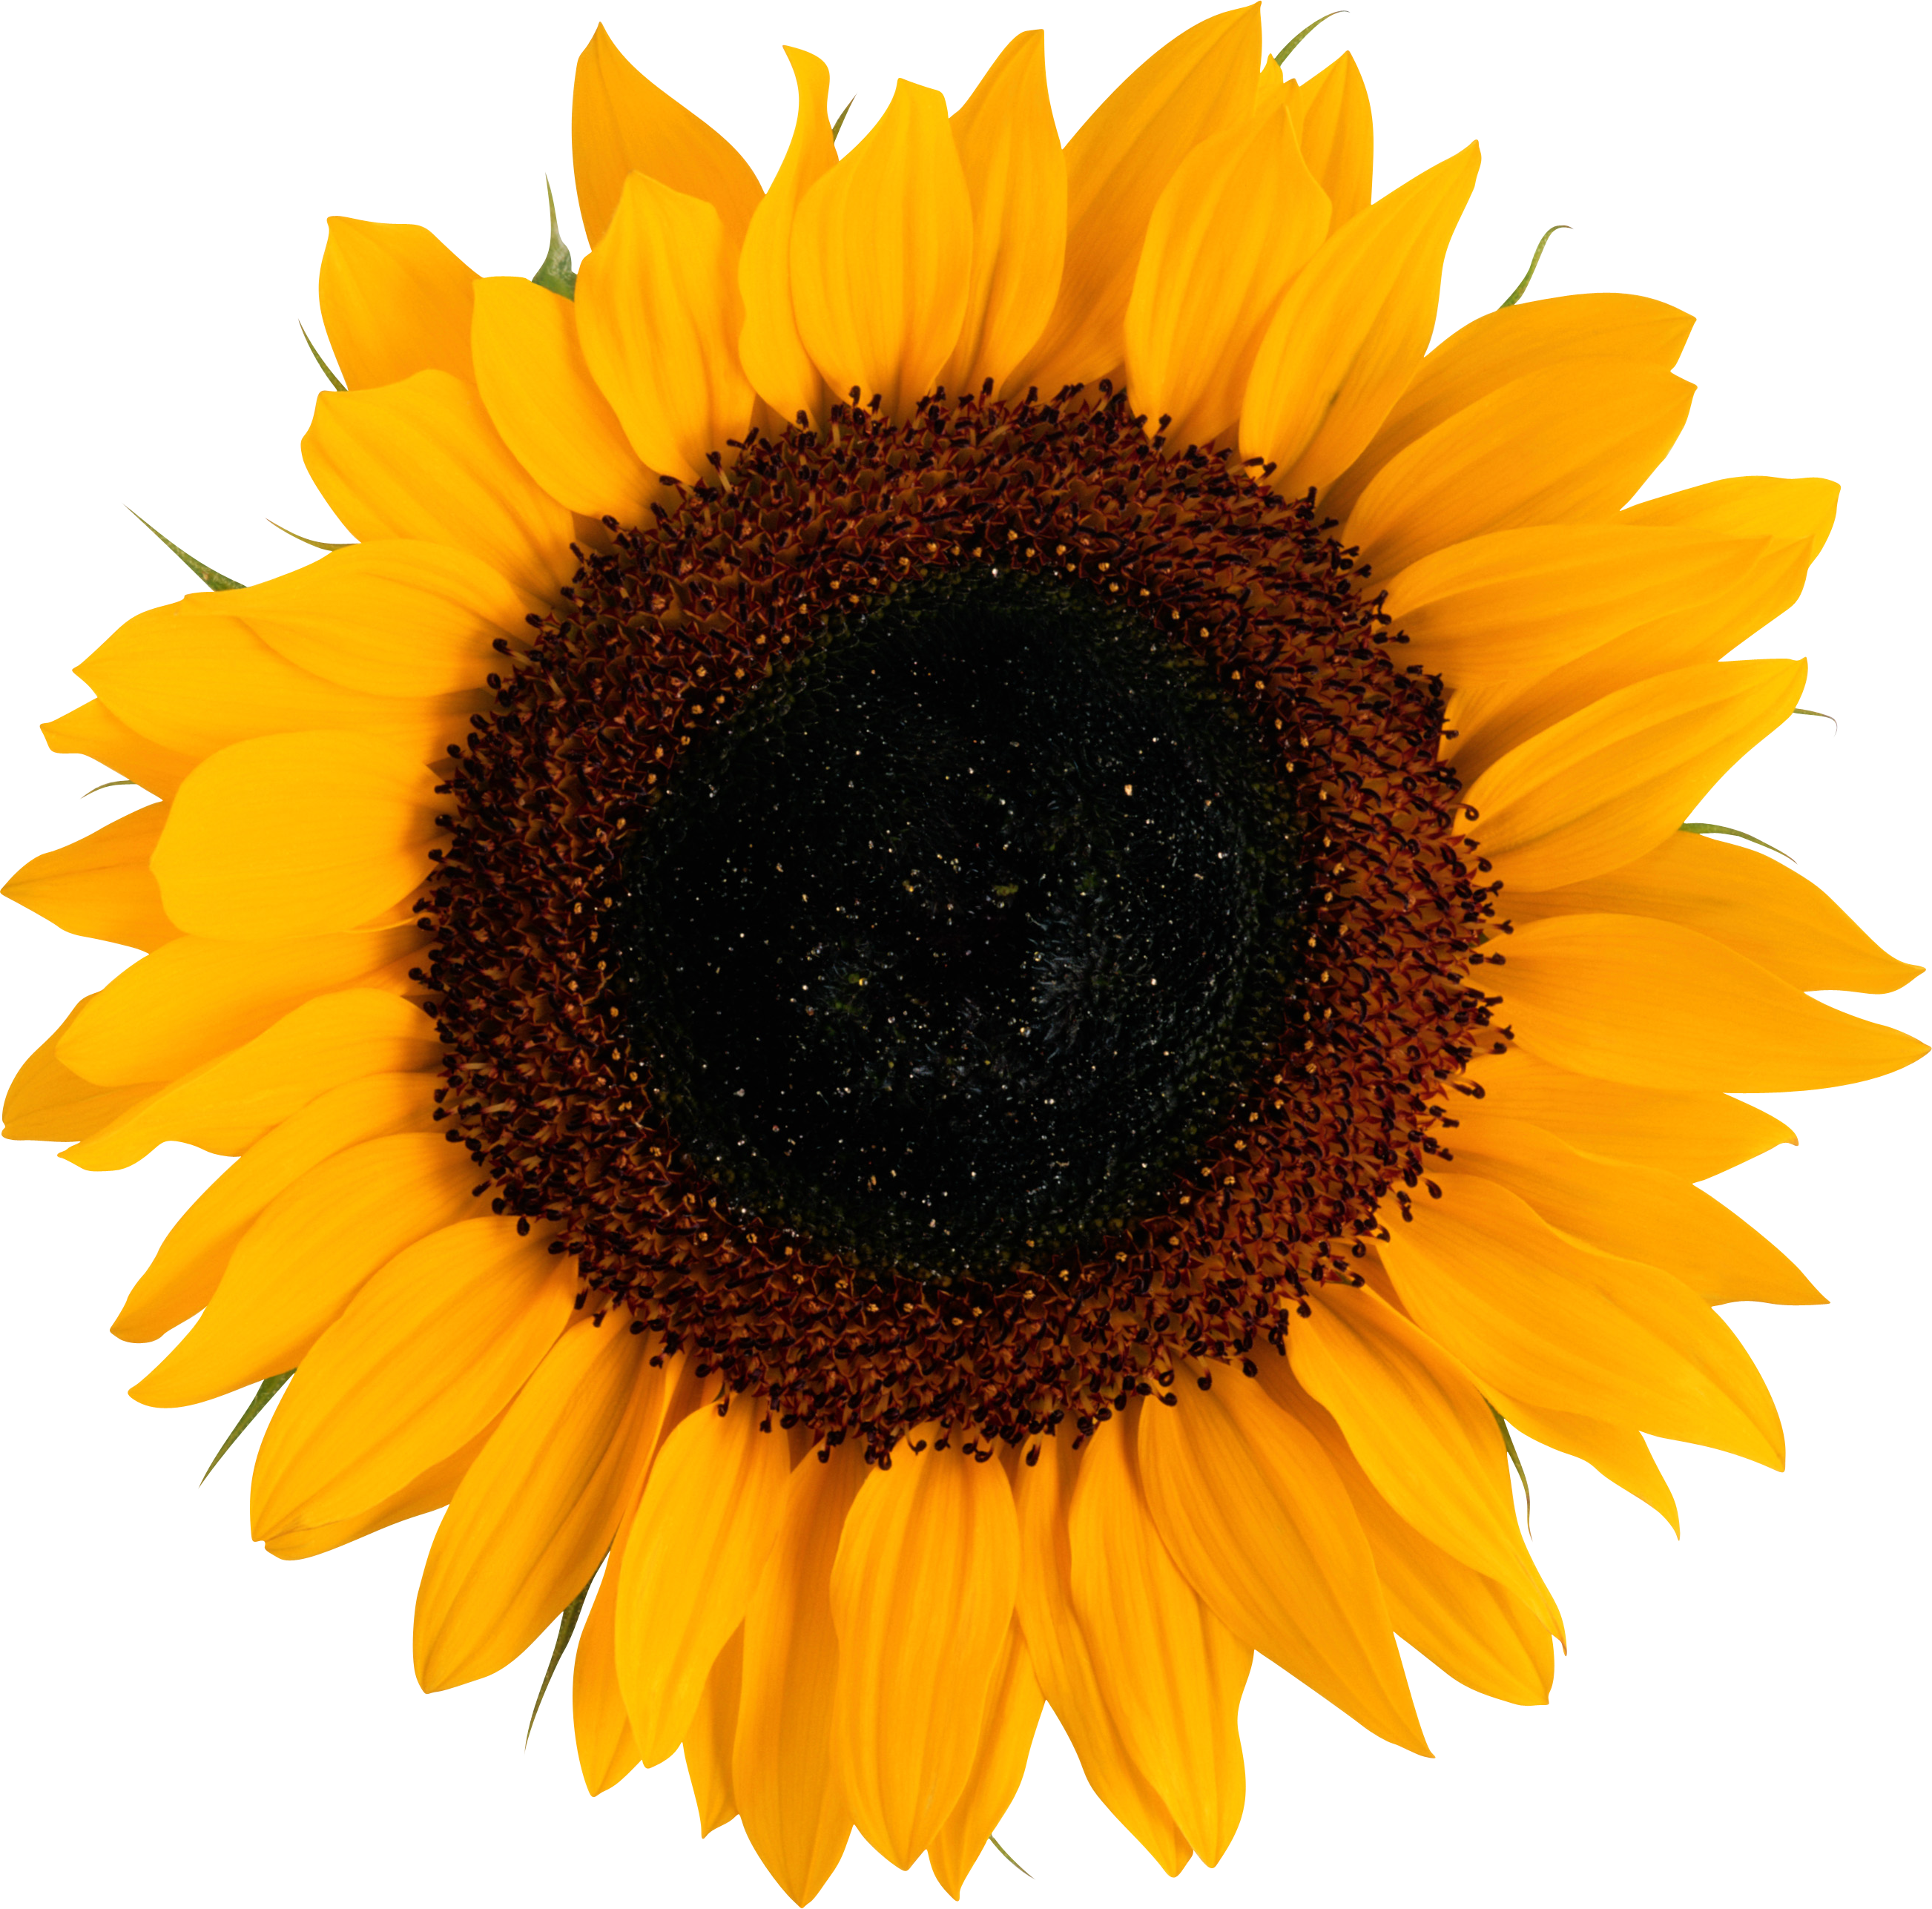 Sunflower PNG logo Pinterest Sunflowers and Logos